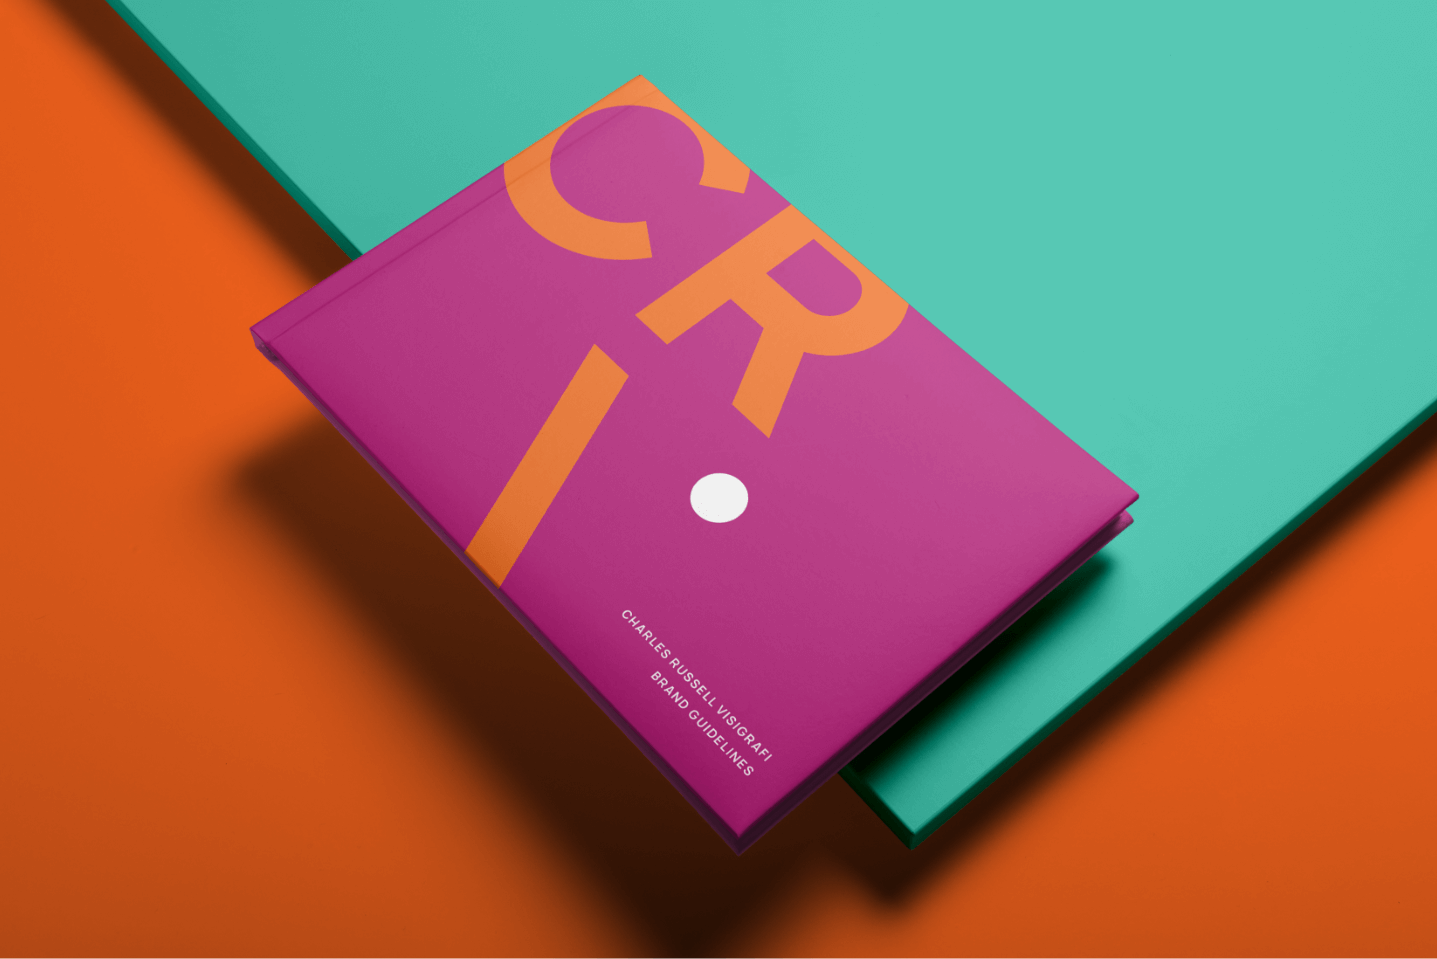 Creative Caterpillar client Charles Russell Visigrafi business cards application.